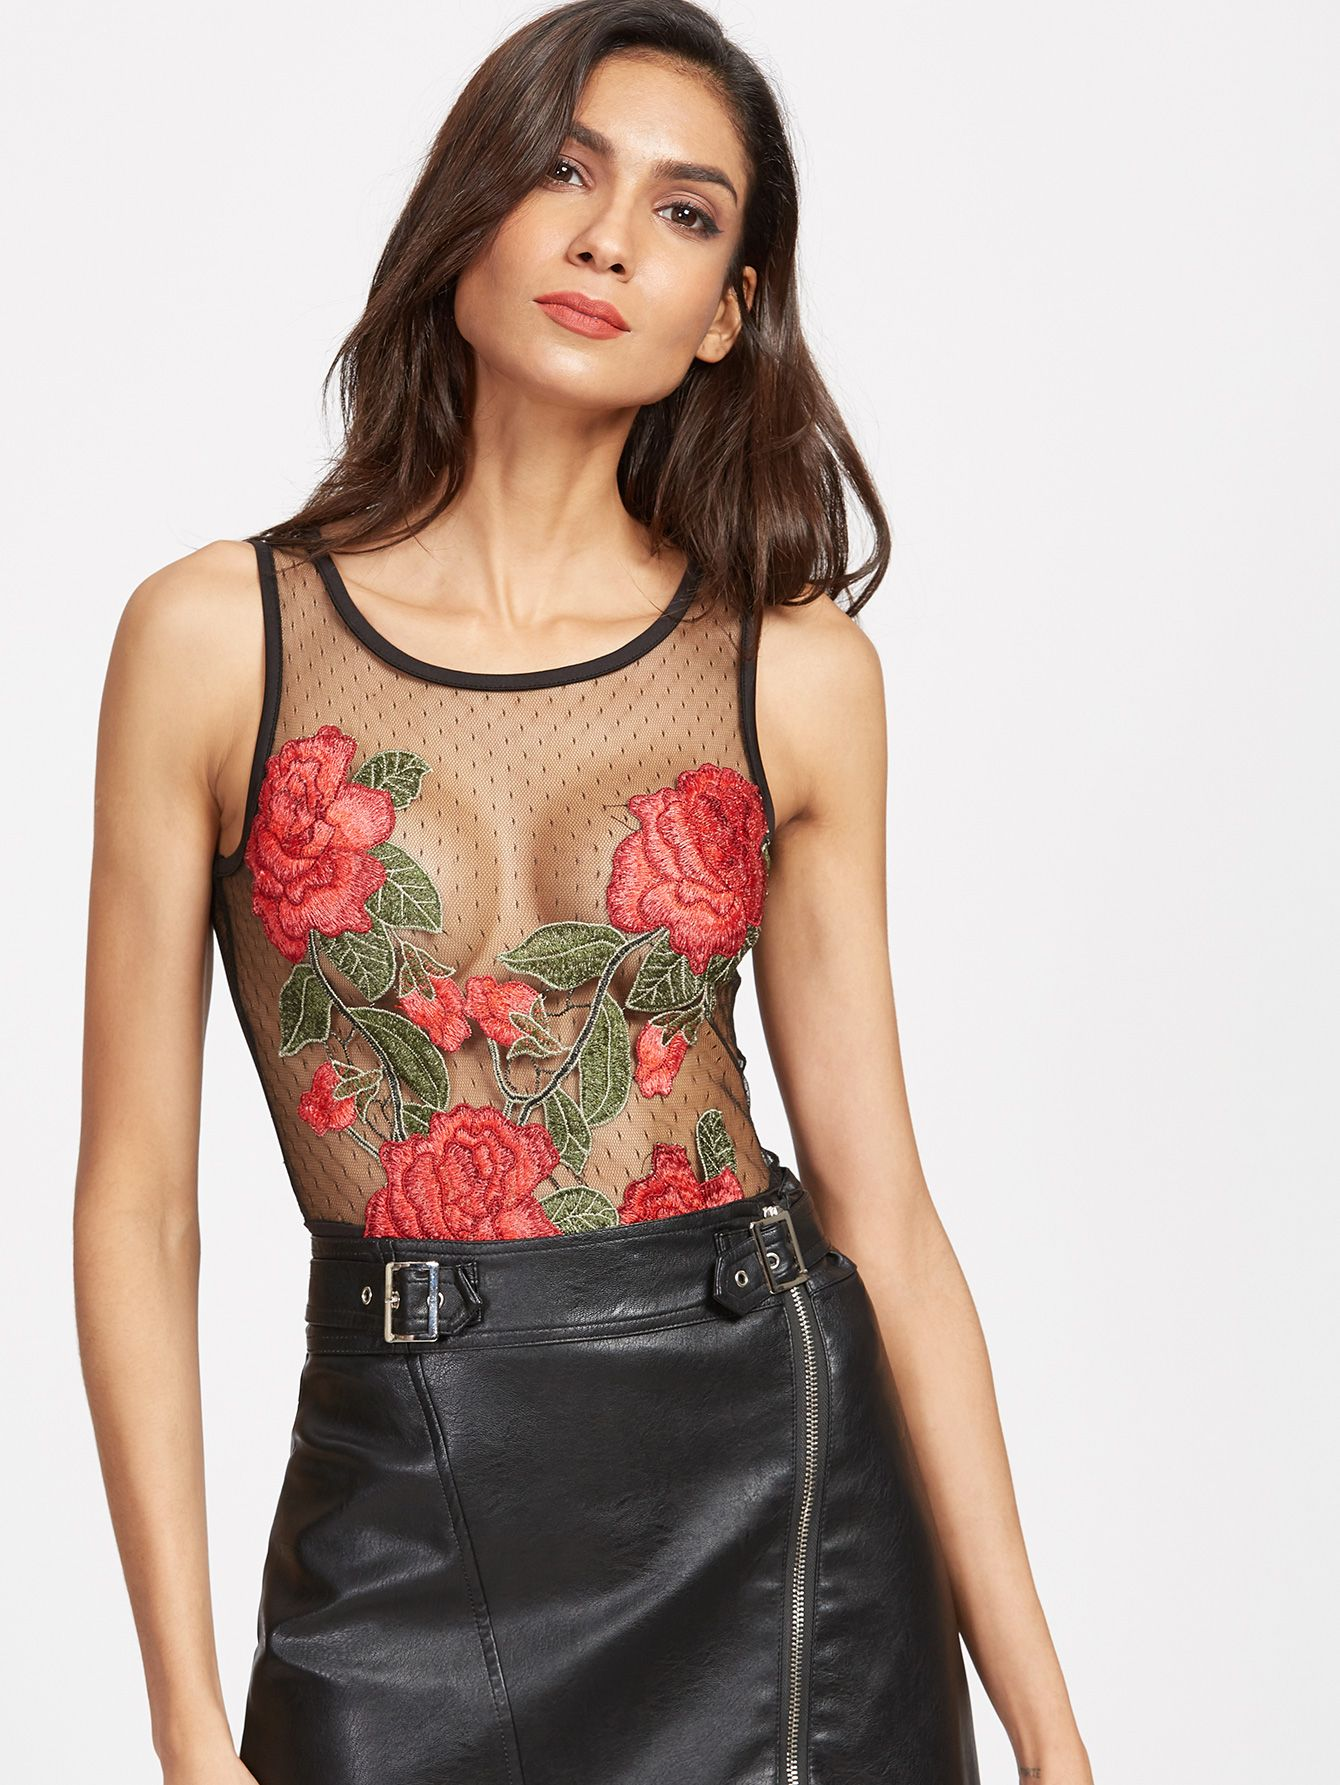 8918c865bff87 20$ Online shopping for Black Rose Embroidered Cutout Back Mesh Bodysuit  from a great selection of women's fashion clothing & more at MakeMeChic.COM.